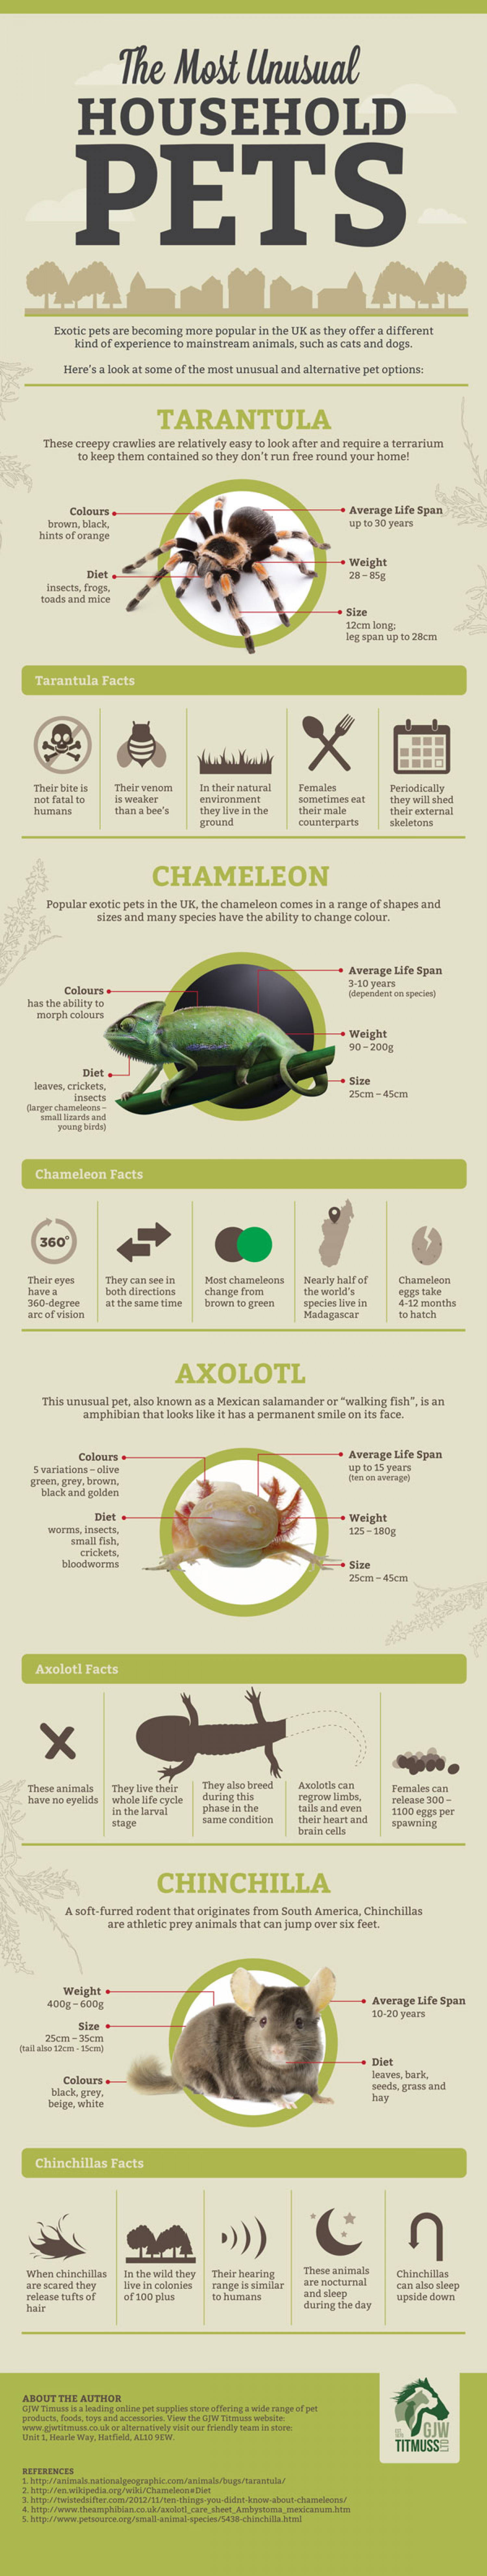 The Most Unusual Household Pets Infographic